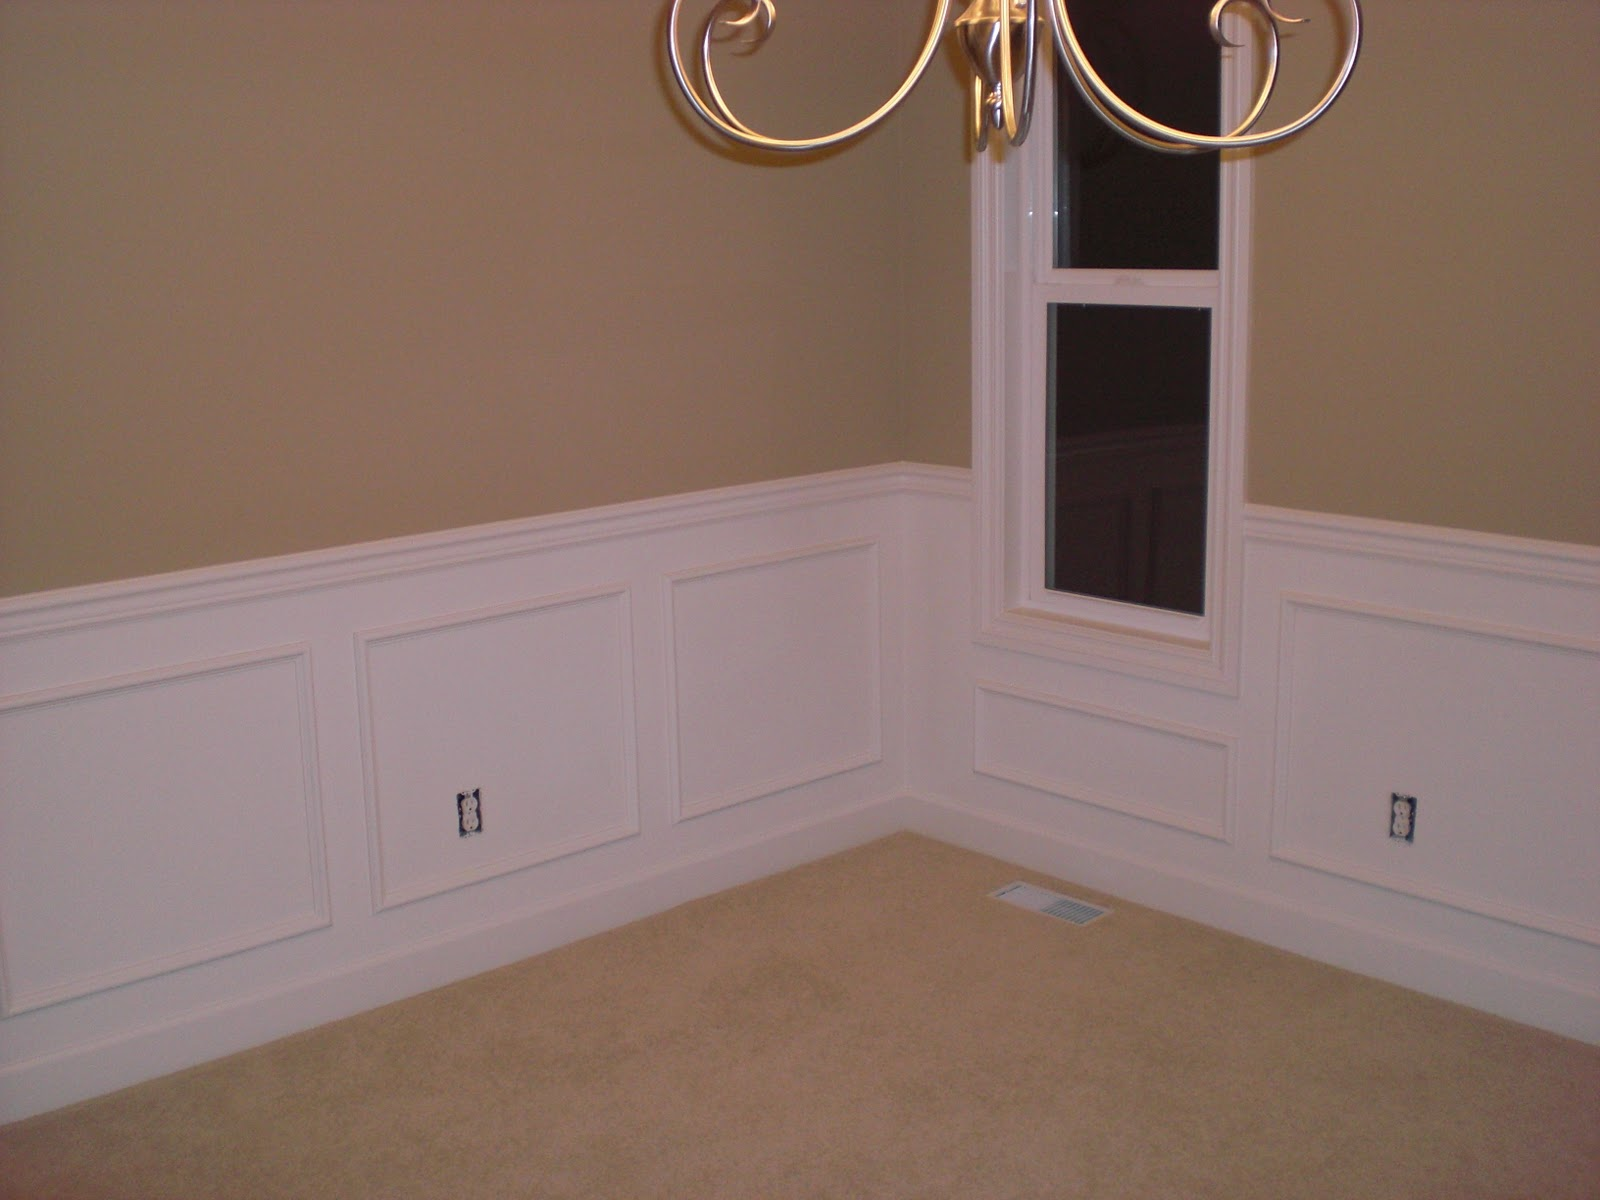 Sherwin Williams Paint Color Of The Year Karen At Home Diy Wainscoting